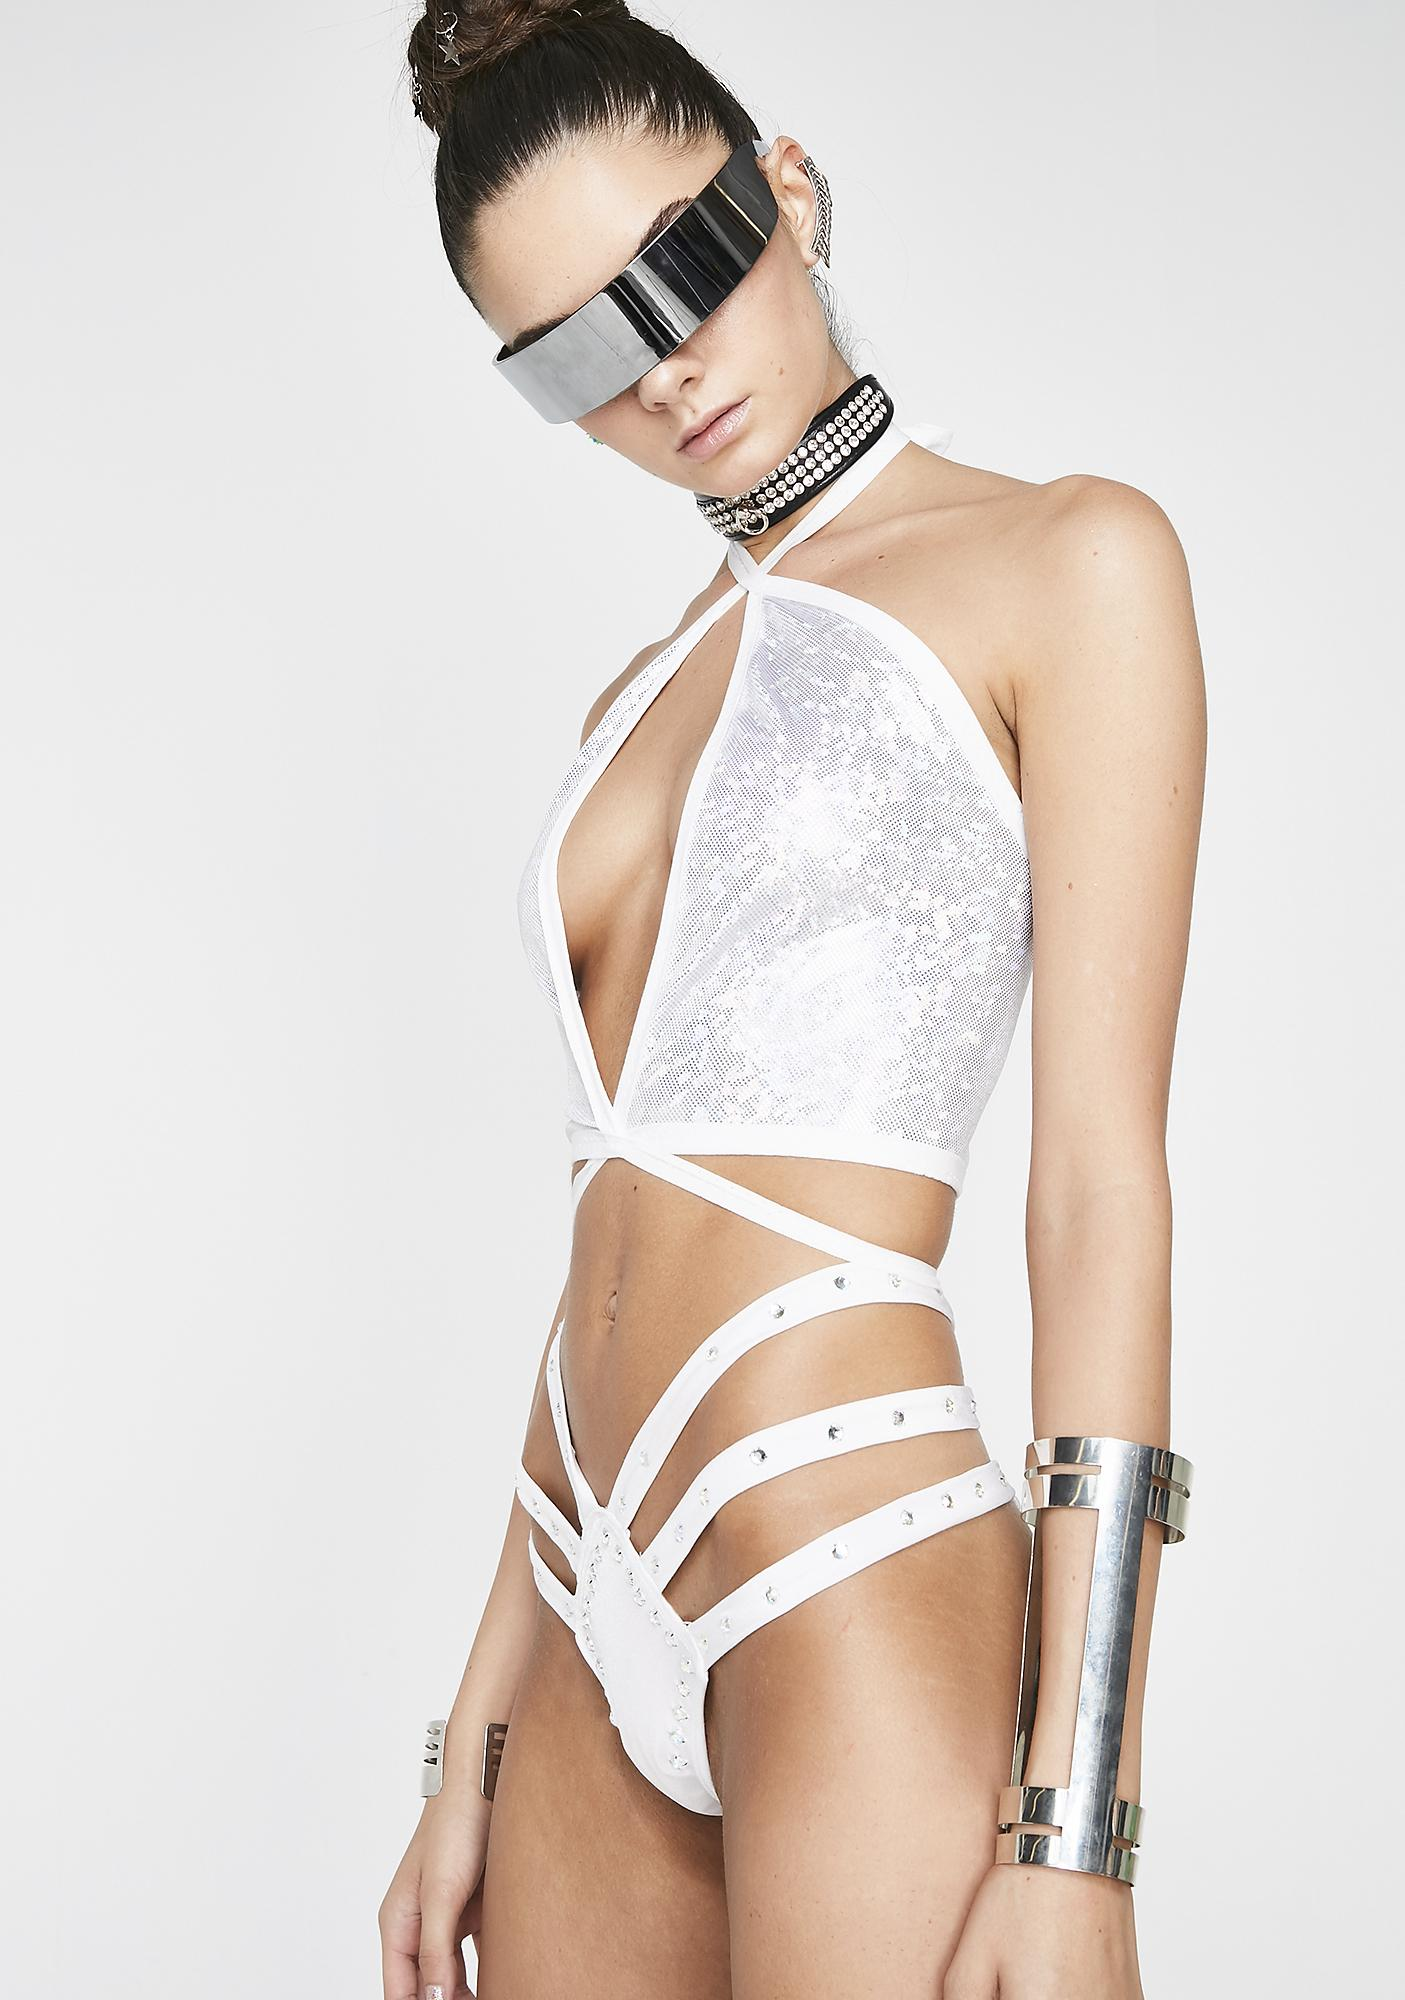 The Lyte Couture Silver Lila Top